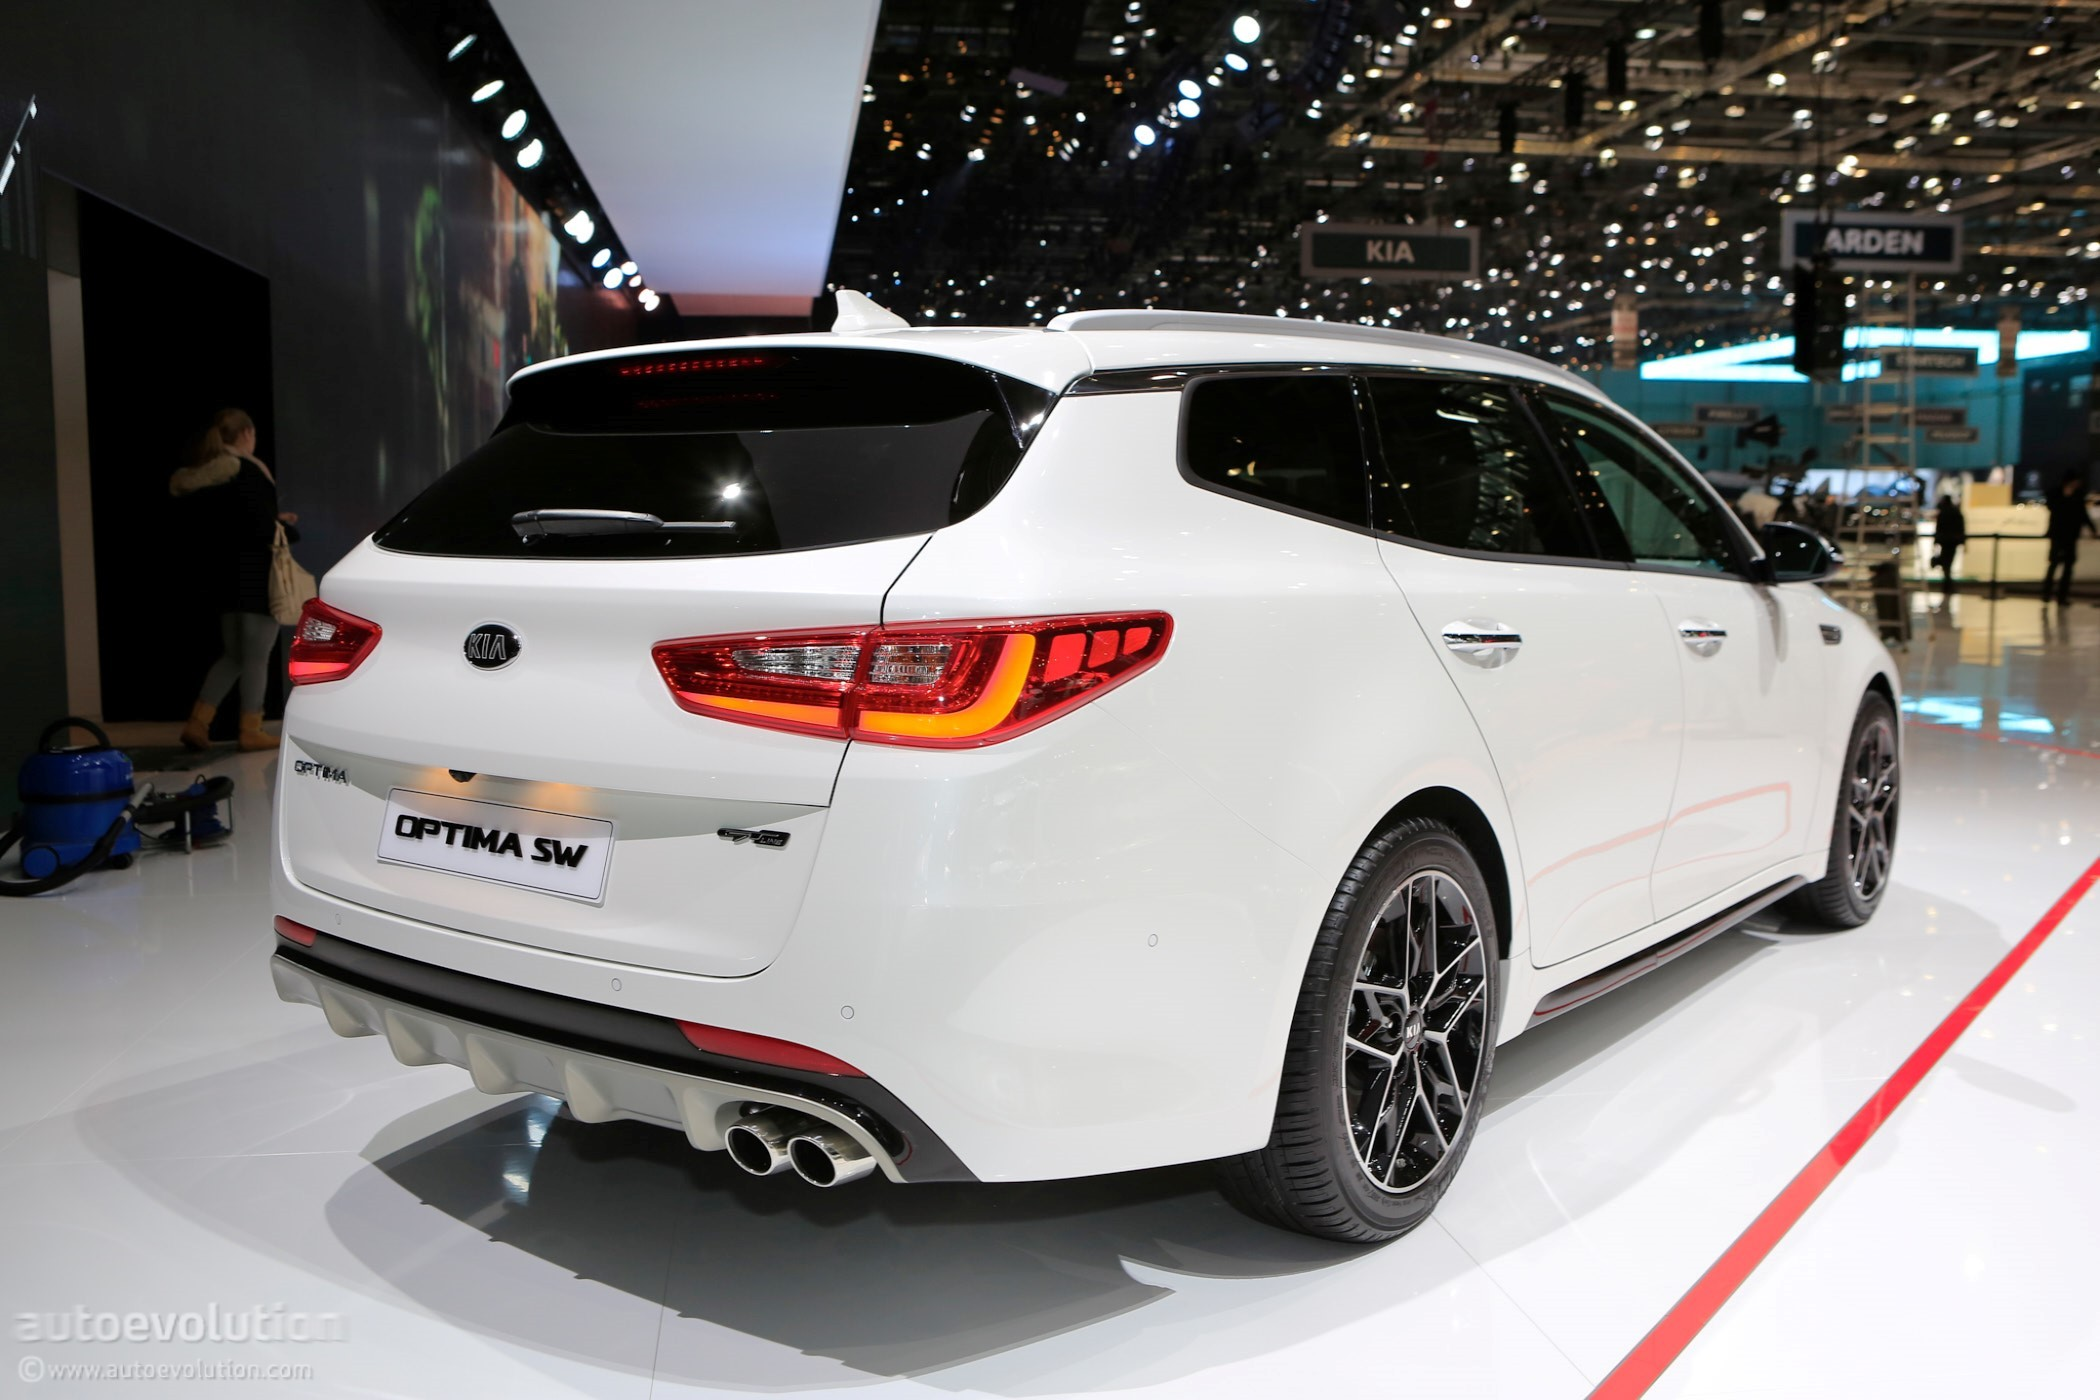 2018 Kia Optima Sw Live At Geneva Motor Show